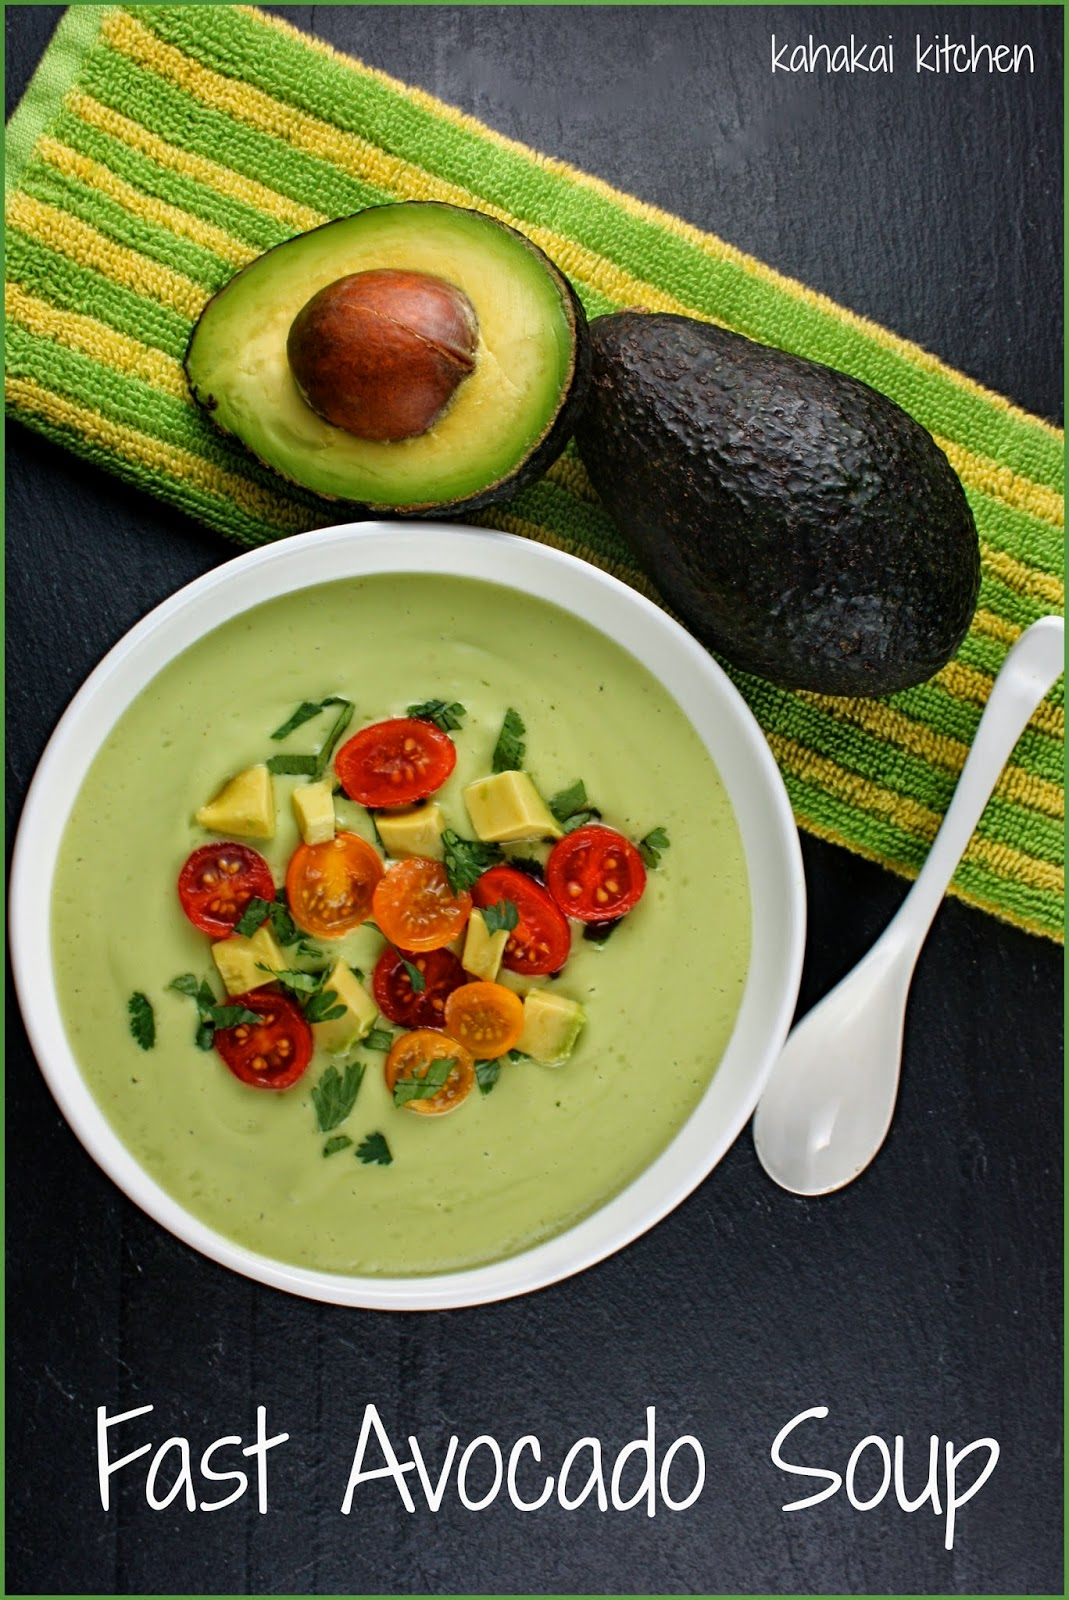 ... chilled soups for chilled california avocado chilled california